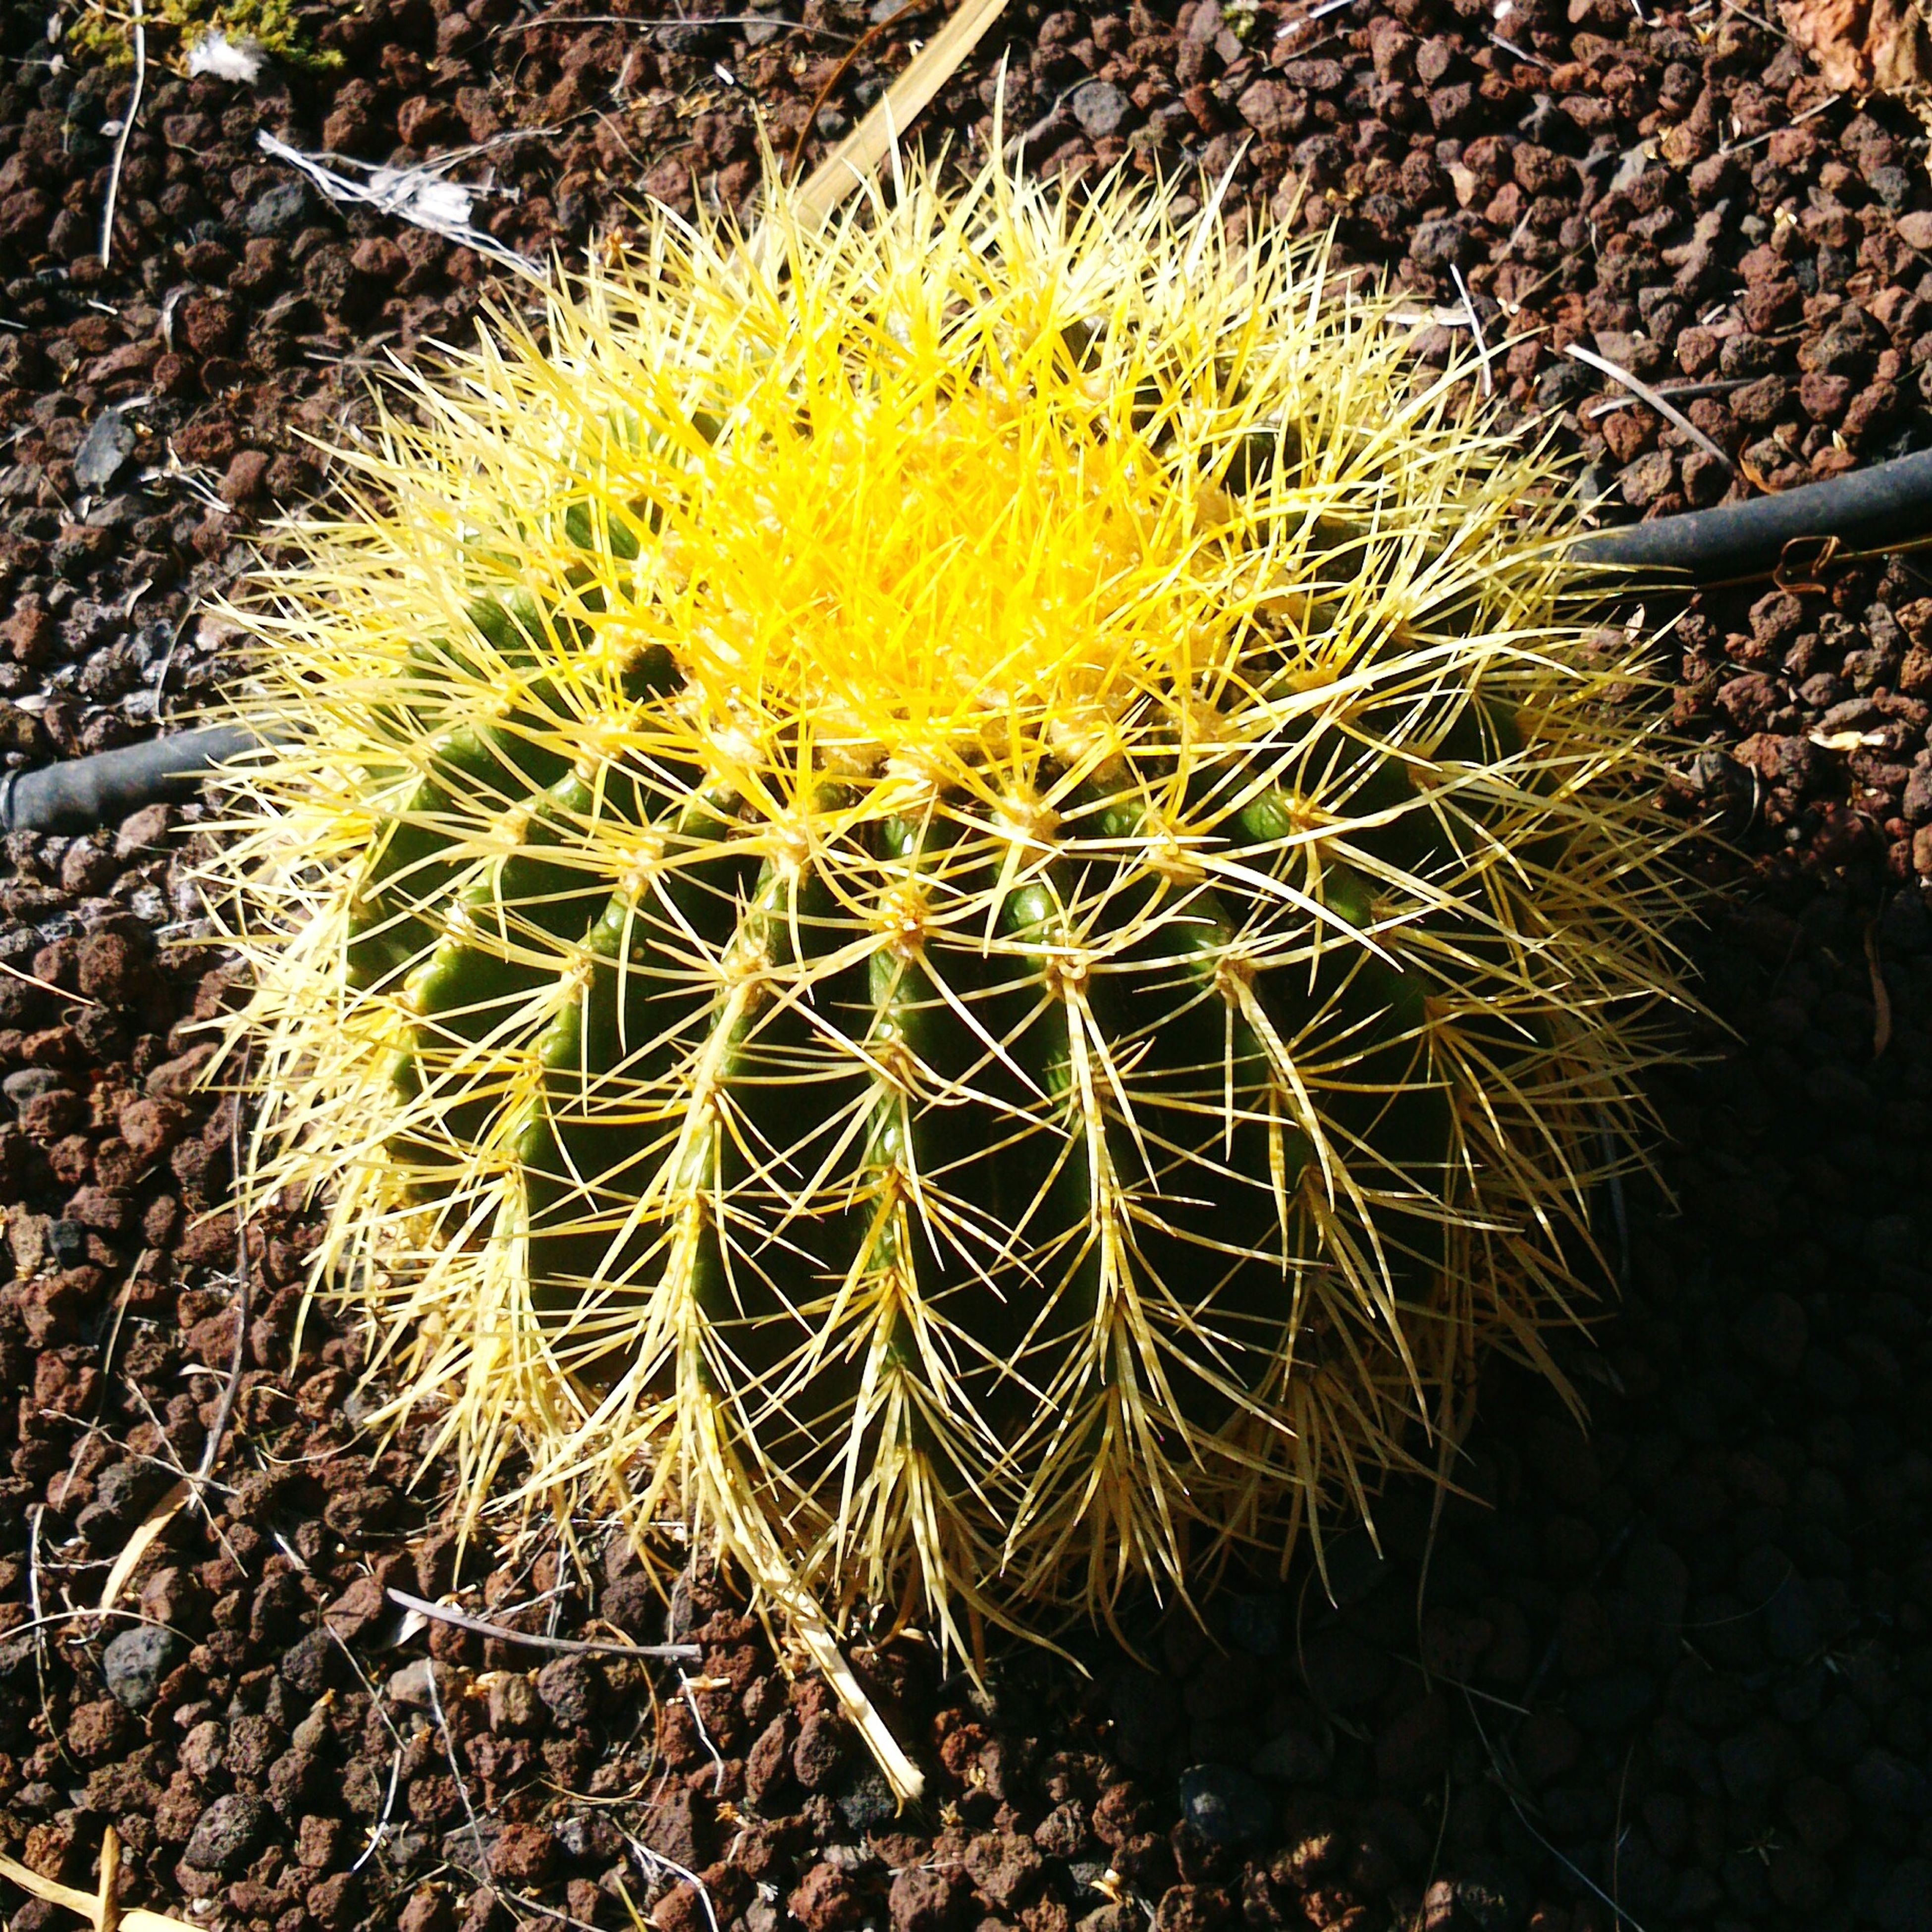 growth, dandelion, high angle view, flower, nature, plant, close-up, fragility, cactus, thorn, field, spiked, beauty in nature, outdoors, day, uncultivated, no people, single flower, flower head, ground